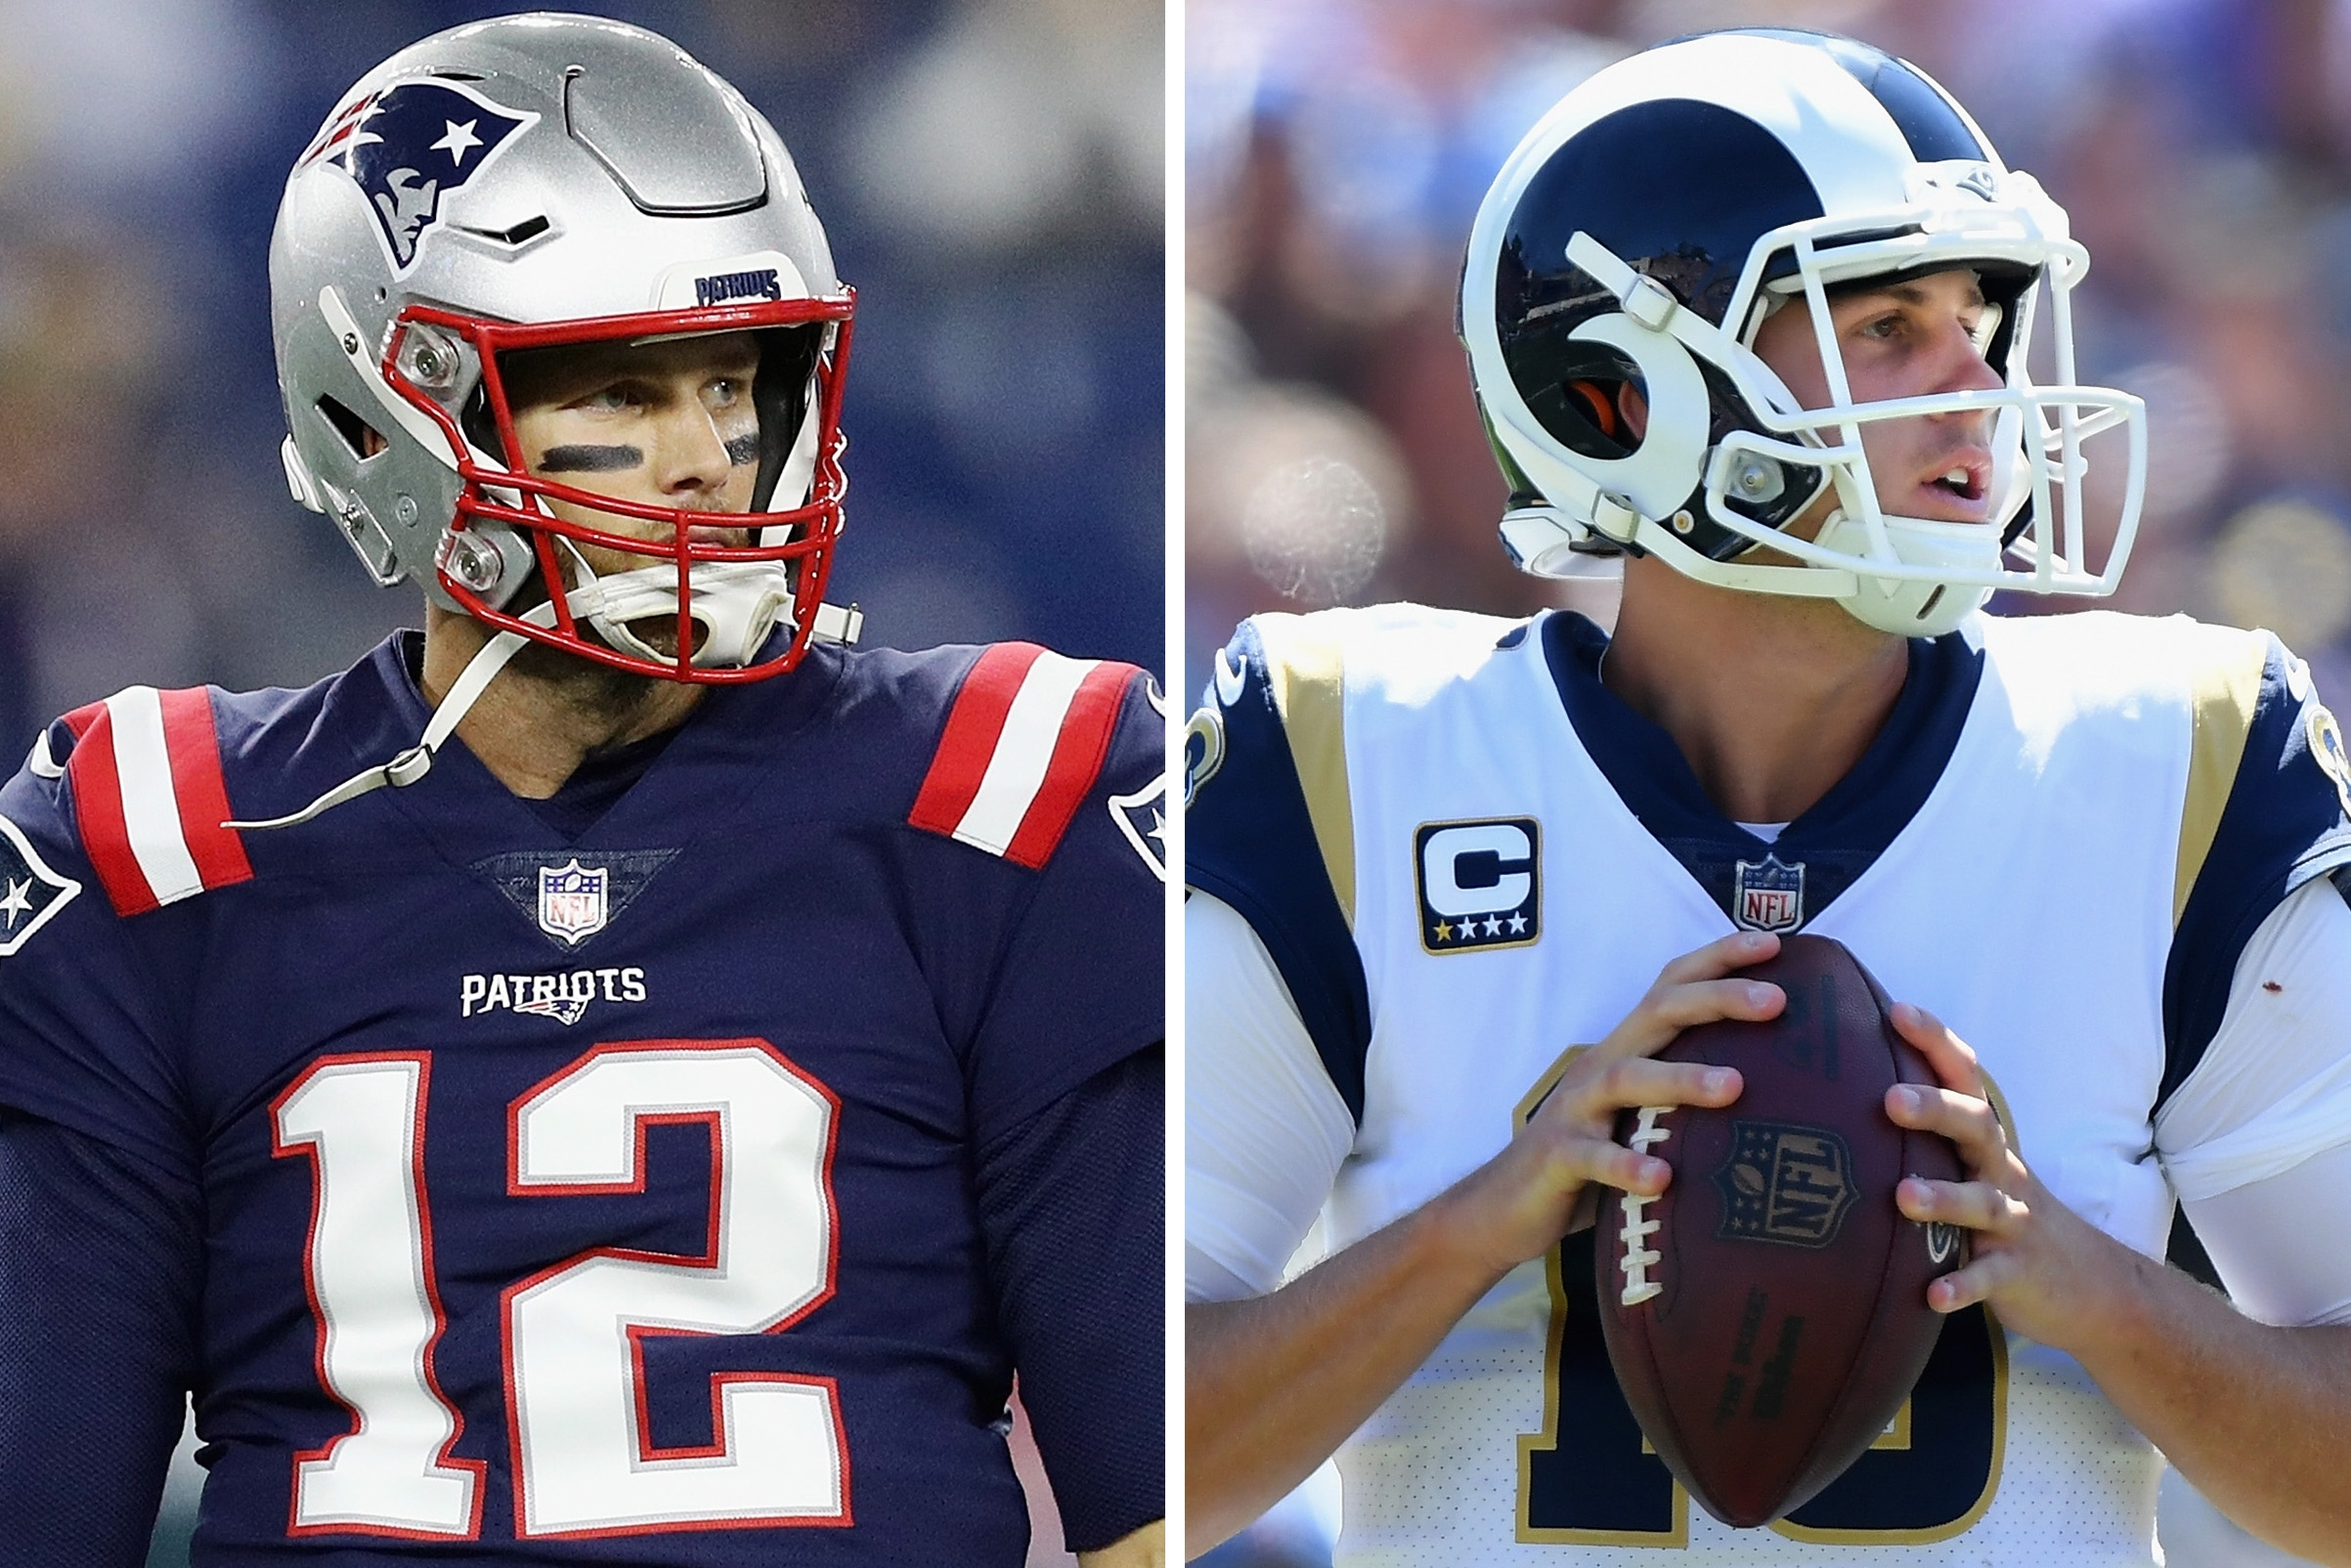 Super Bowl 2019: For Tom Brady, Experience May Be Overrated pertaining to Super Bowl 2019 Tom Brady